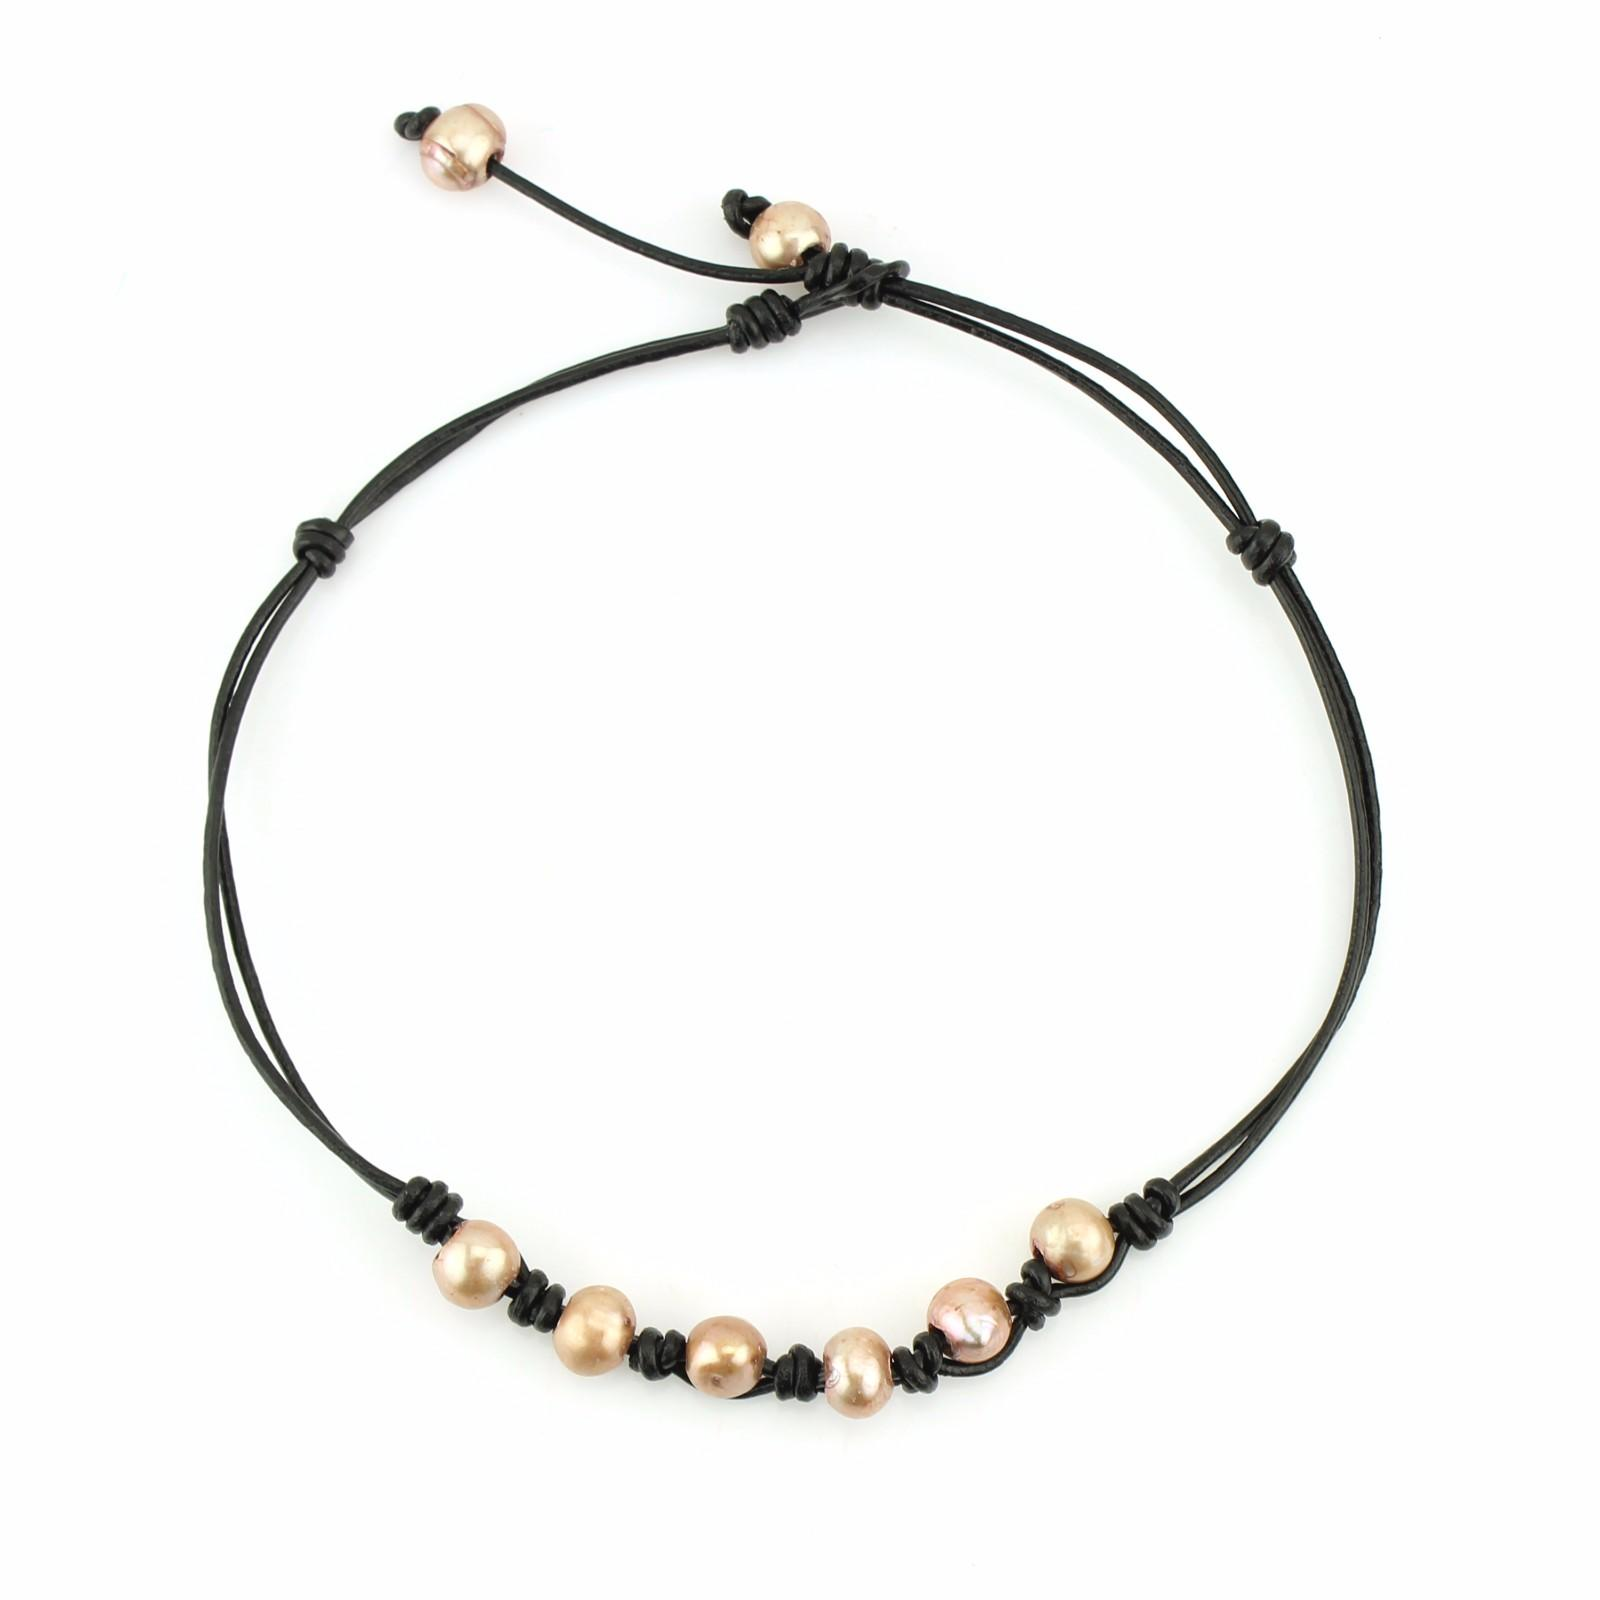 pearl freshwater plain black choker necklace TTT Jewelry Brand